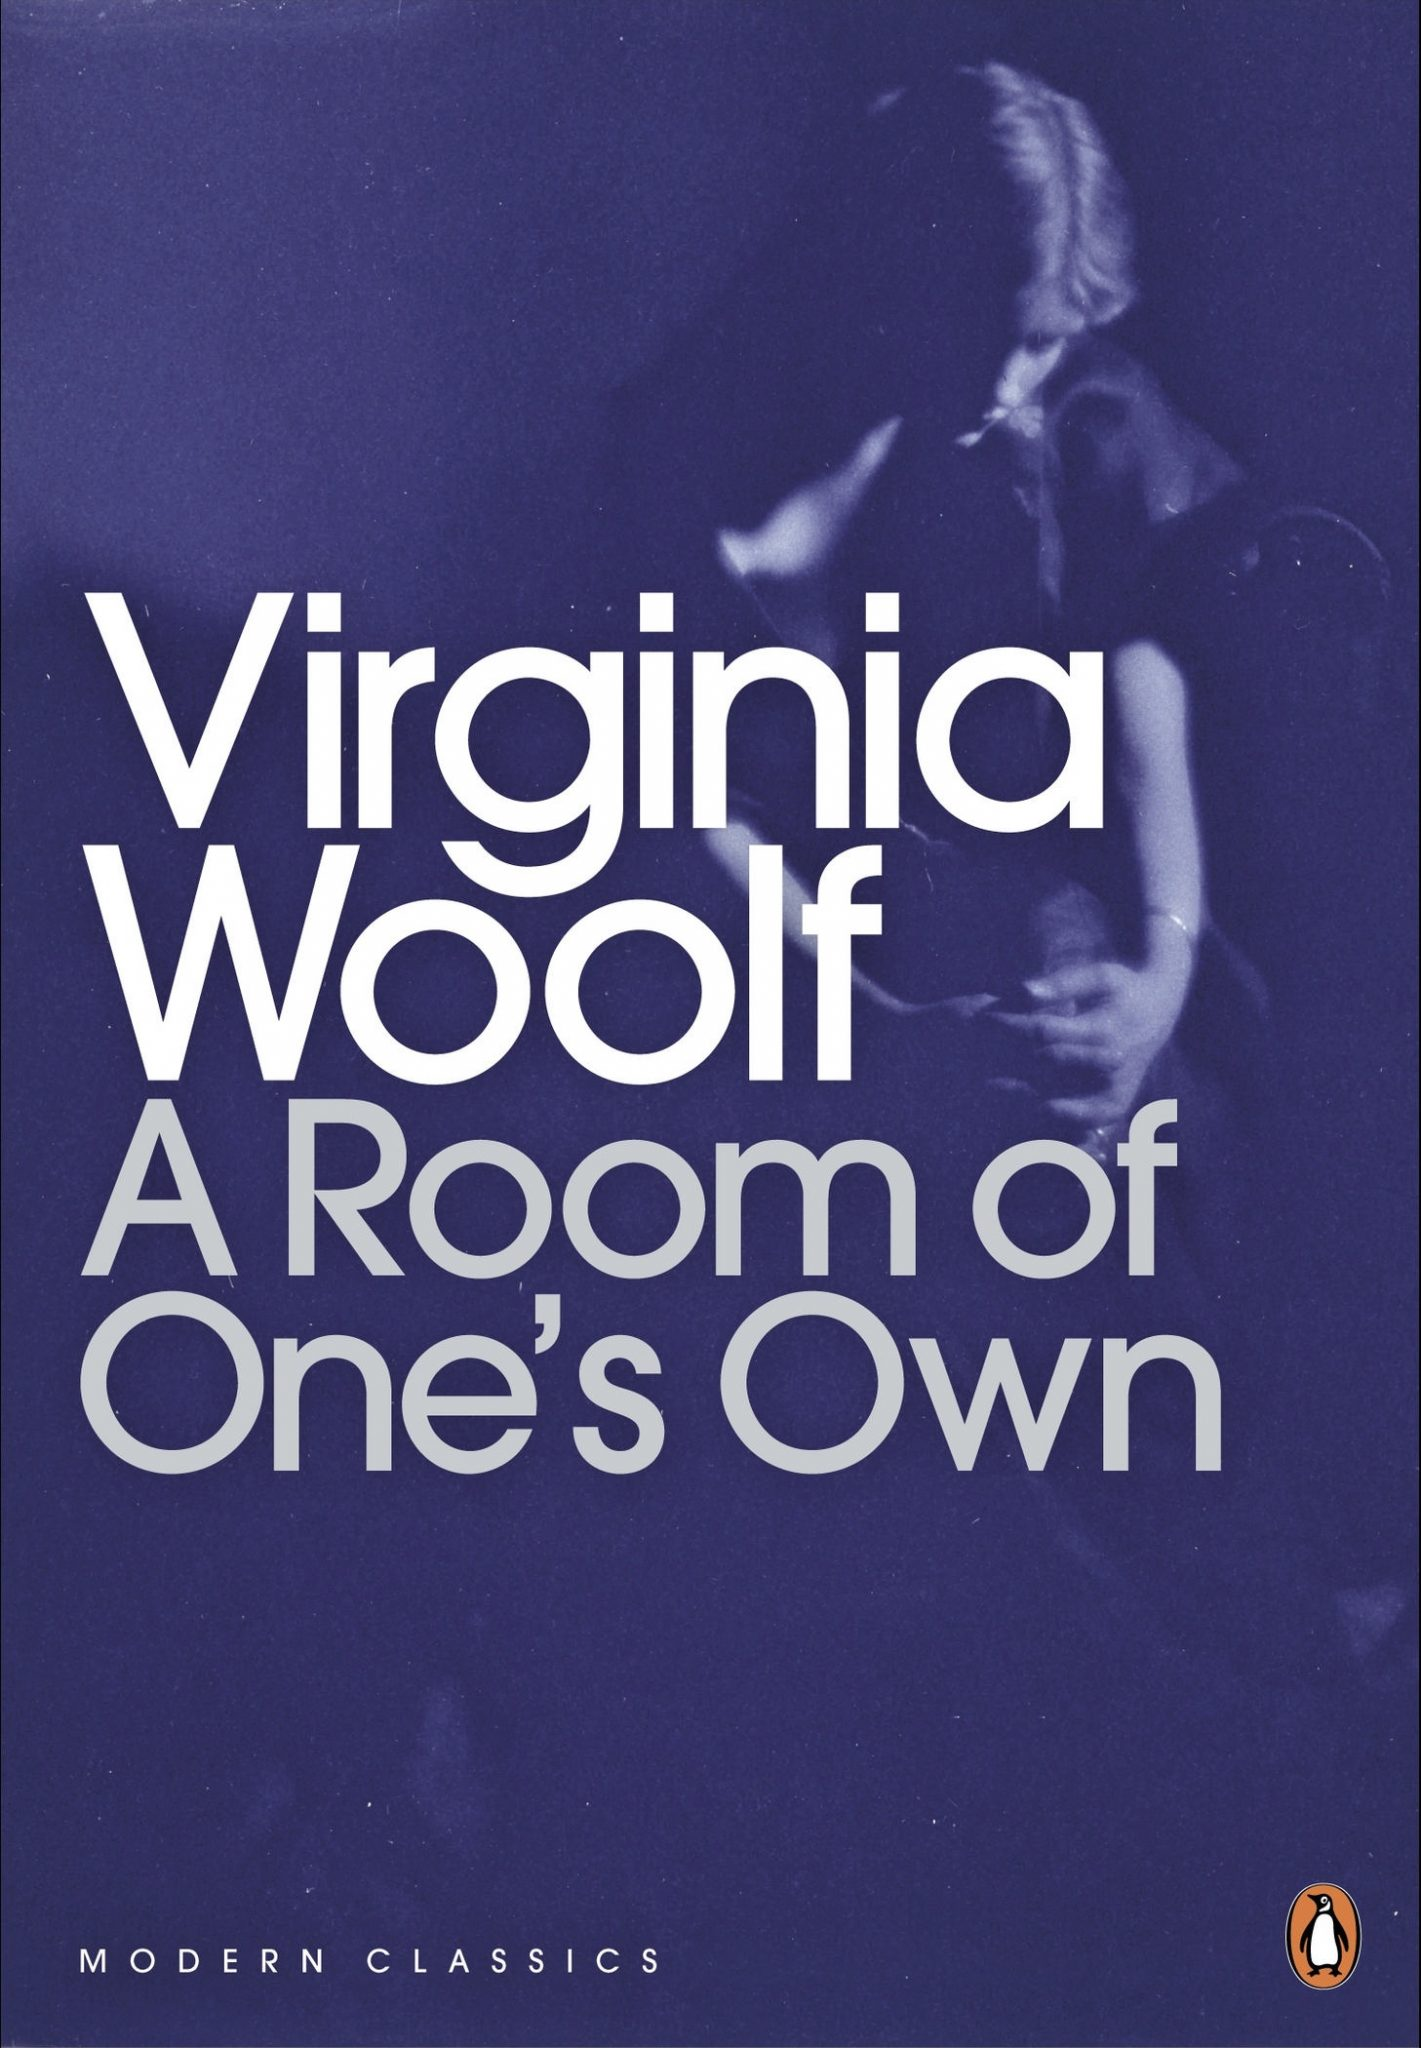 Photo: A Room of One's Own; Source: Penguin Books